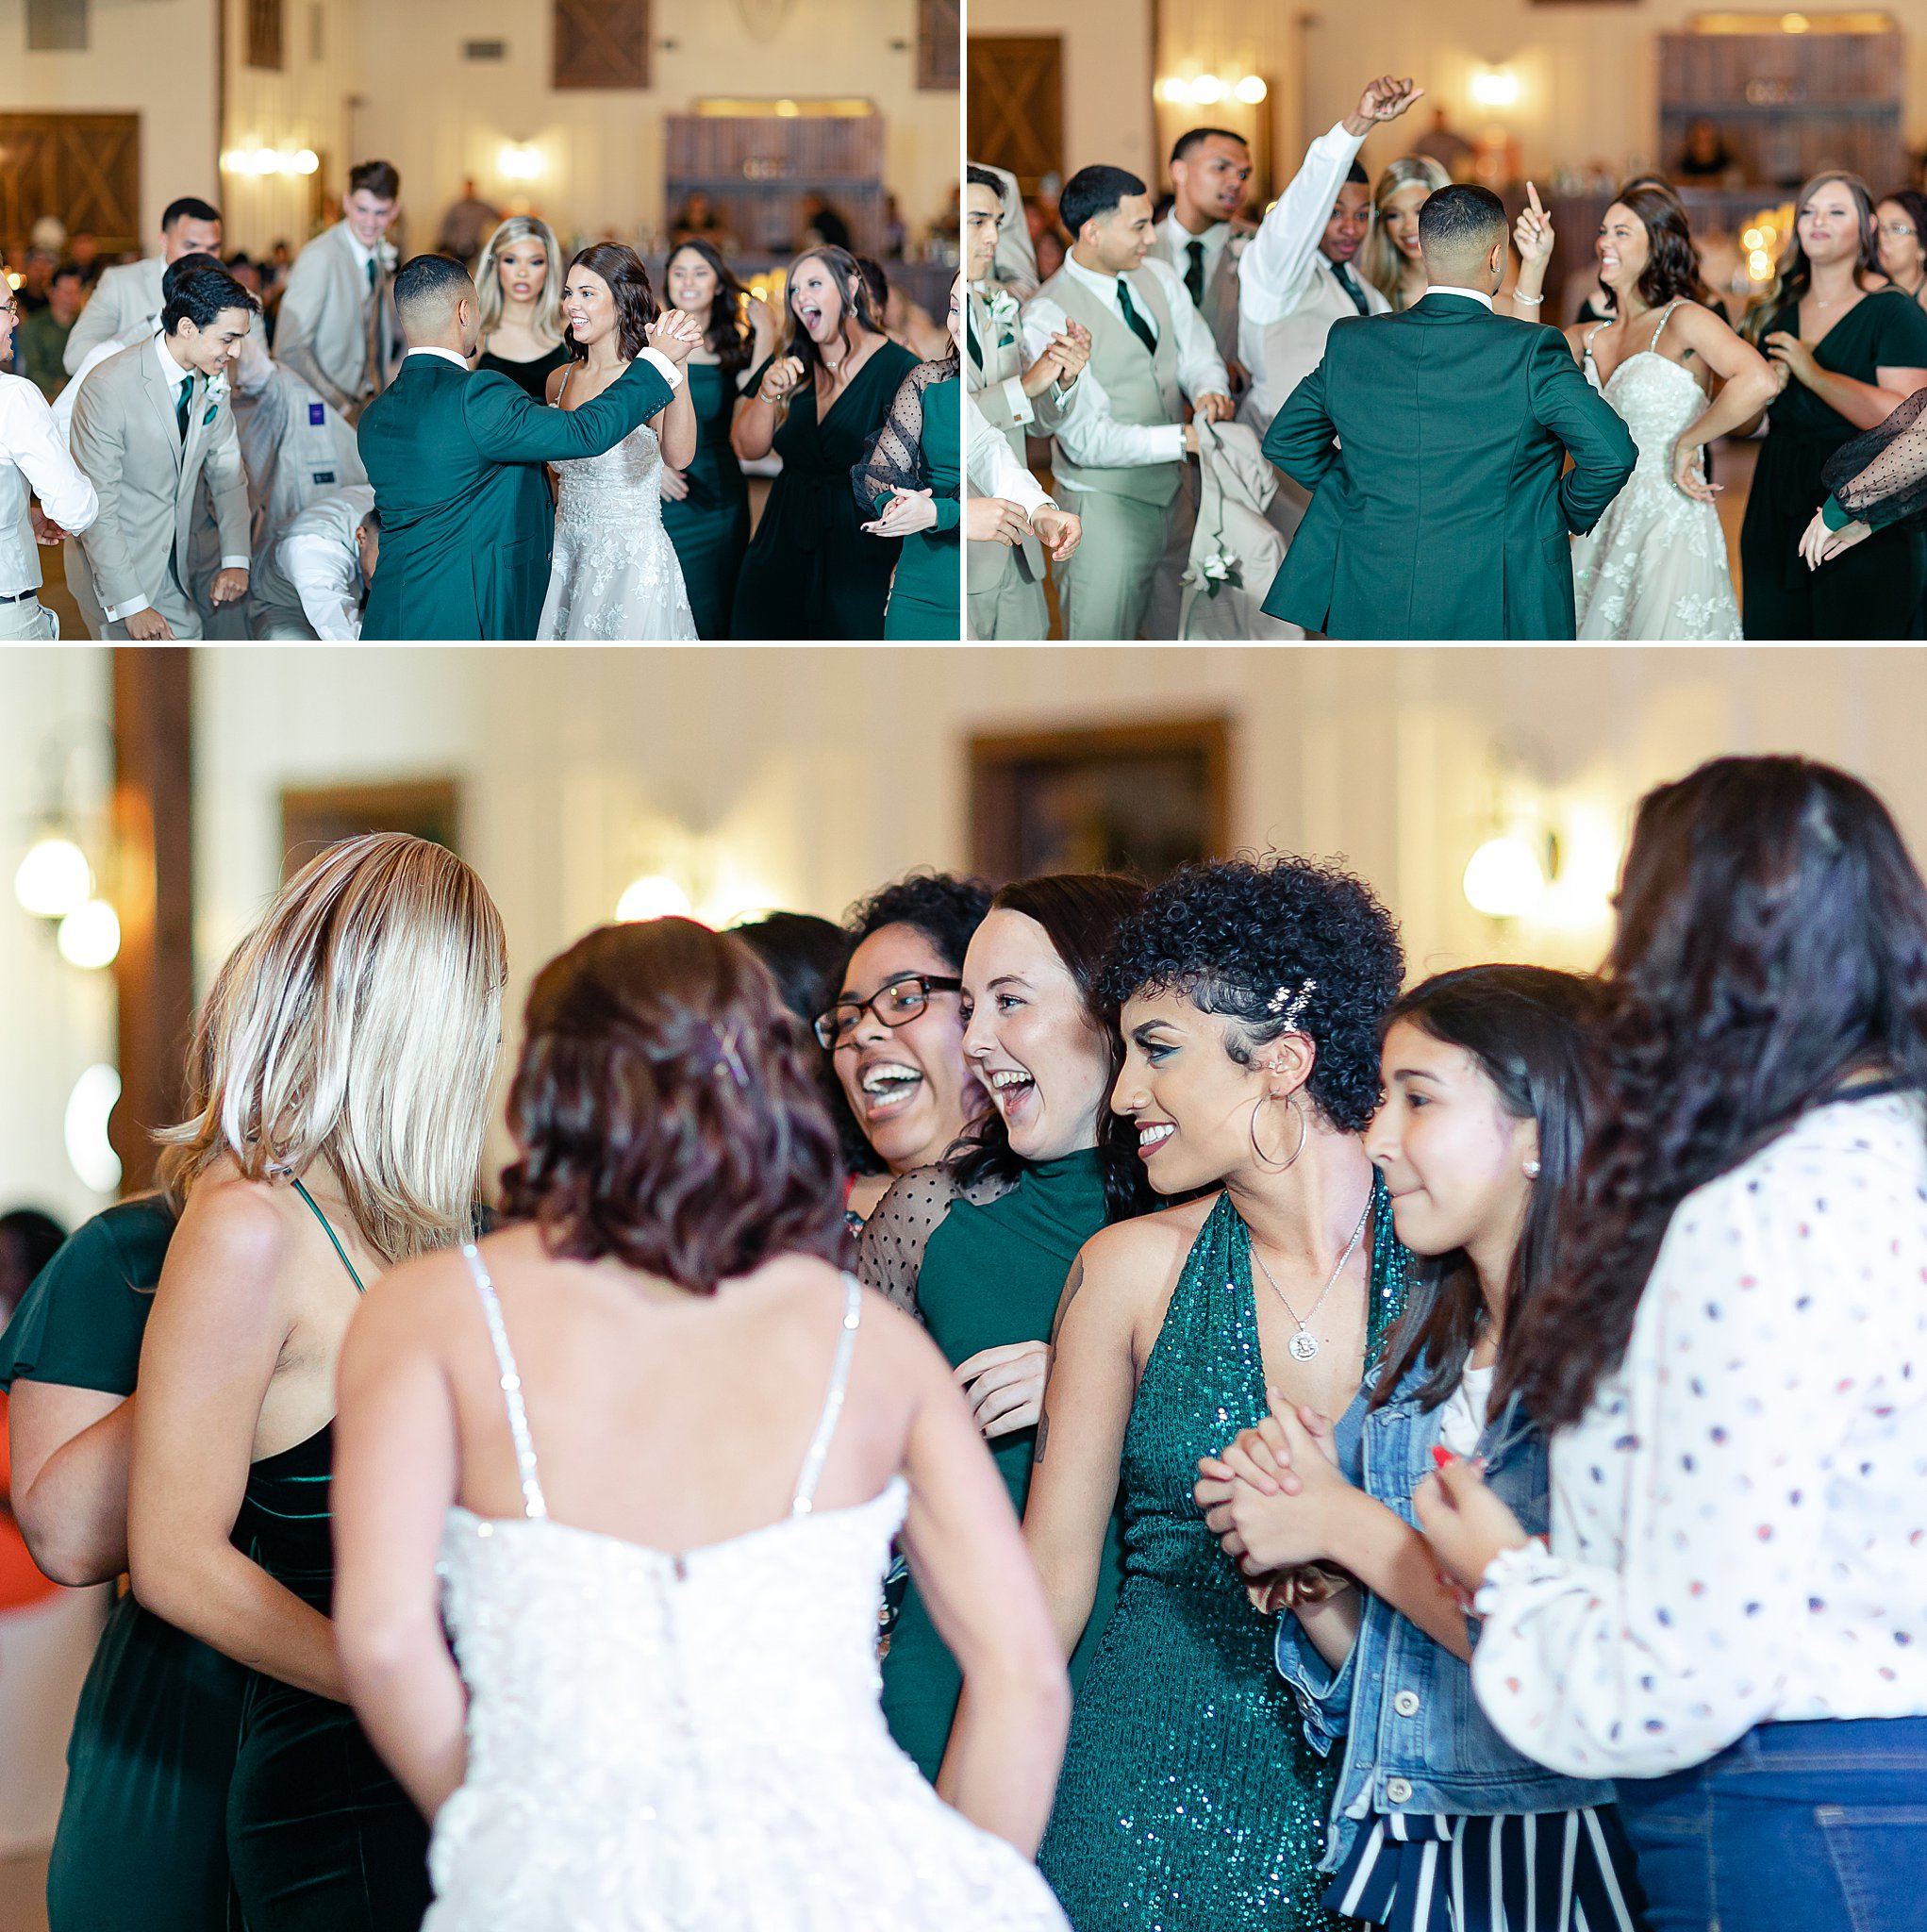 Carly-Barton-Photography-Texas-Wedding-Photographer-Western-Sky-Wedding-Event-Venue-Emerald-Green-Theme_0046.jpg